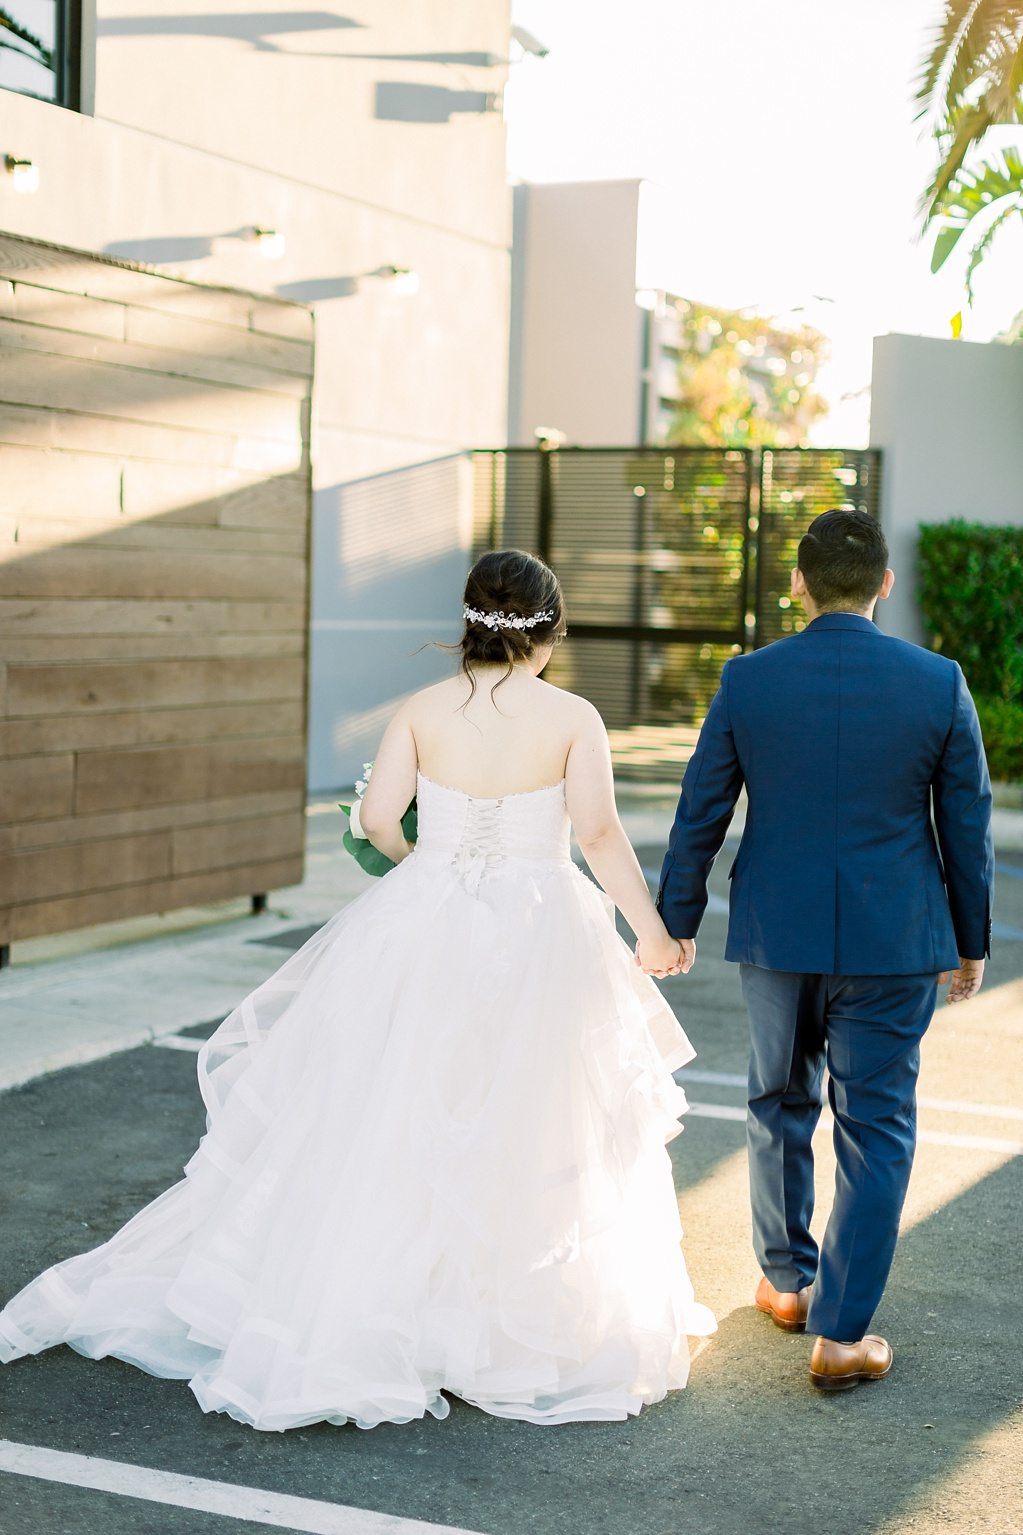 092918_StephenScarletWedding_0888